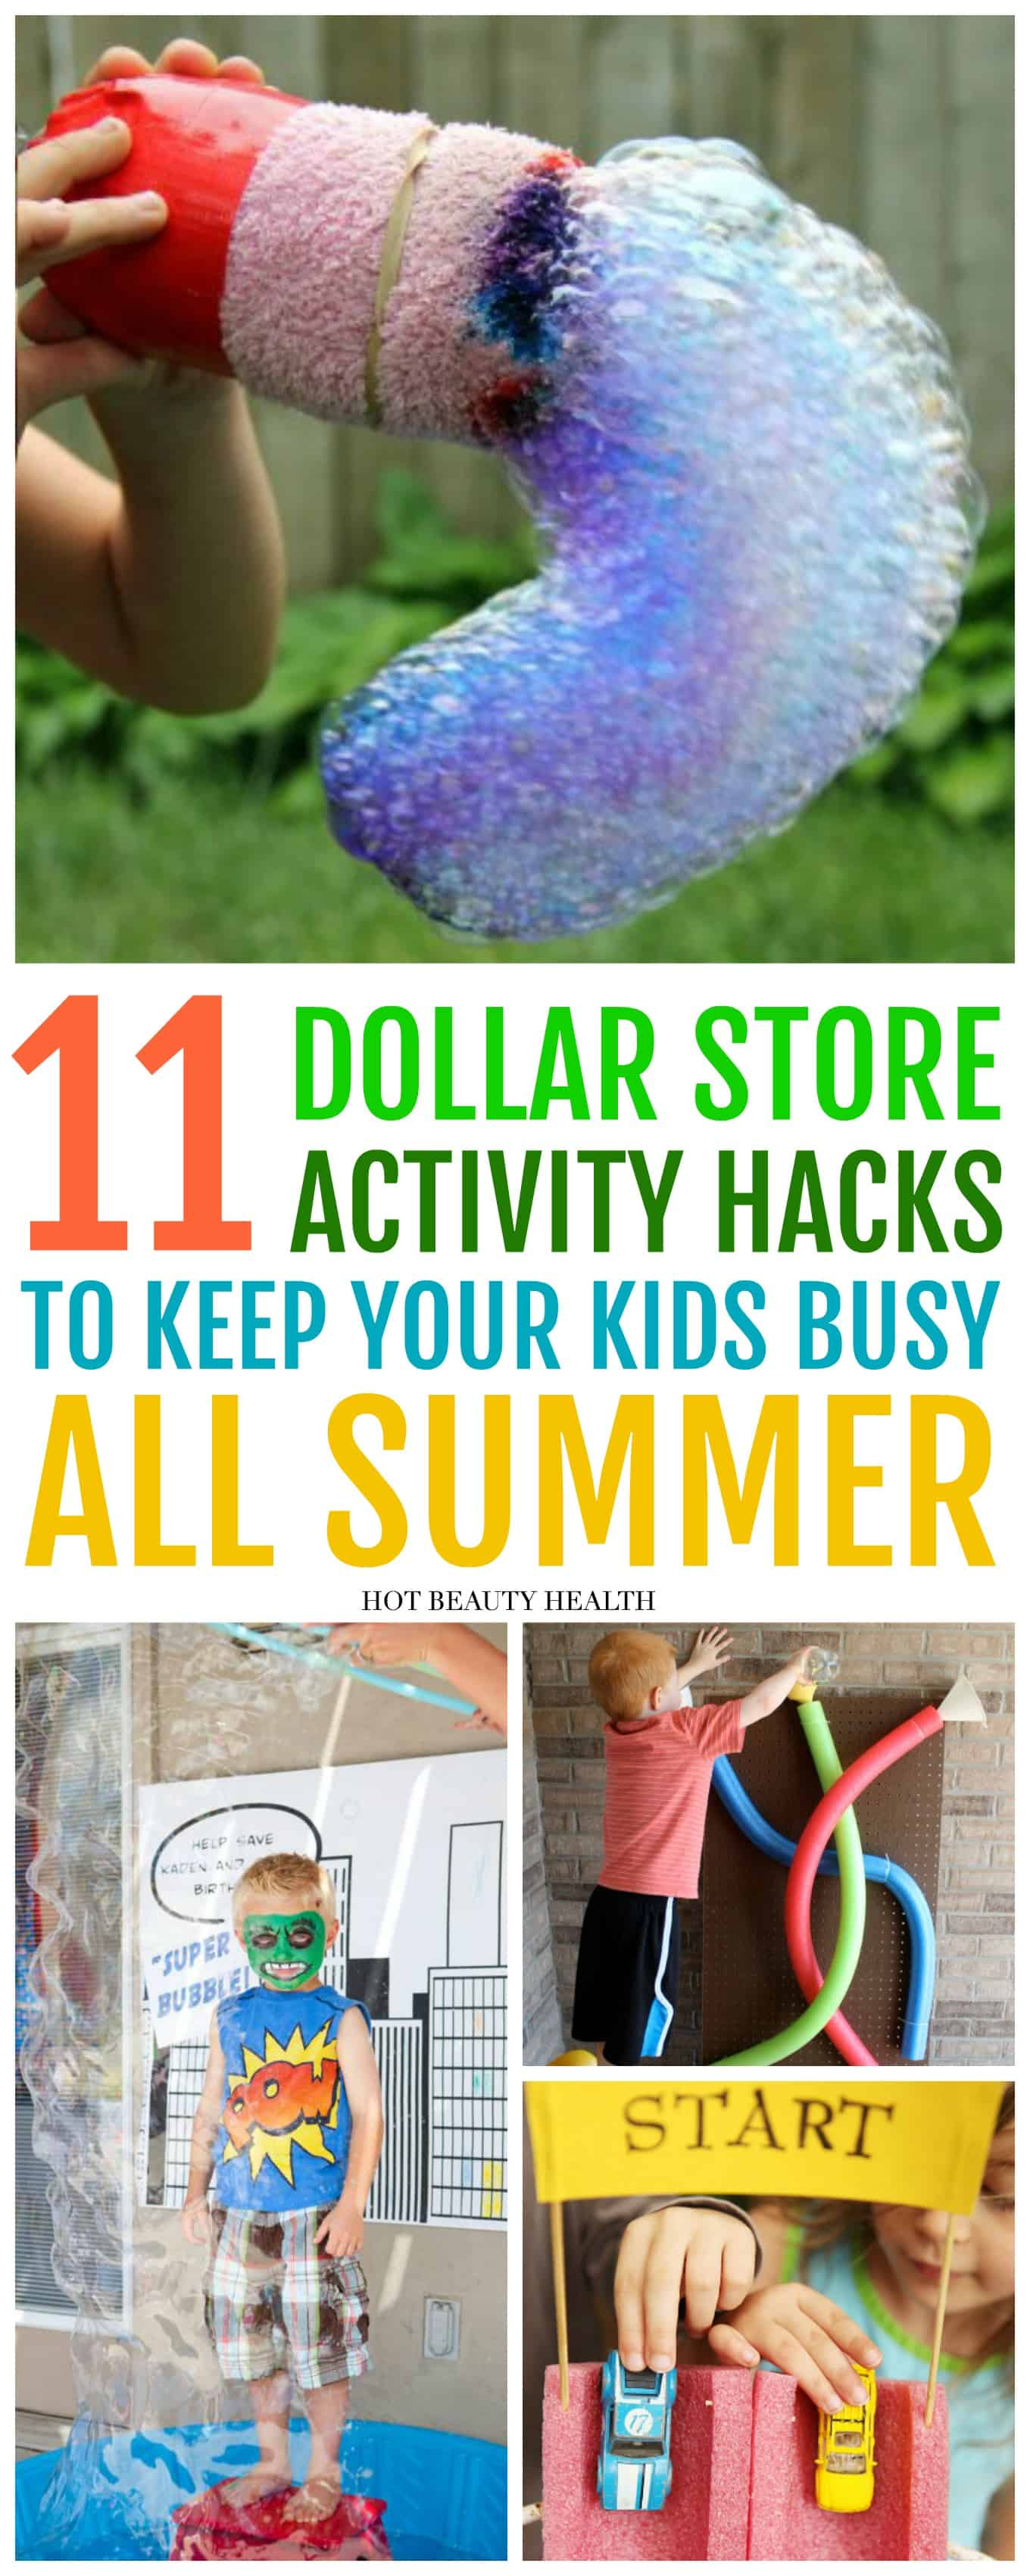 11 Fun Activities To Diy This Summer From The Dollar Store